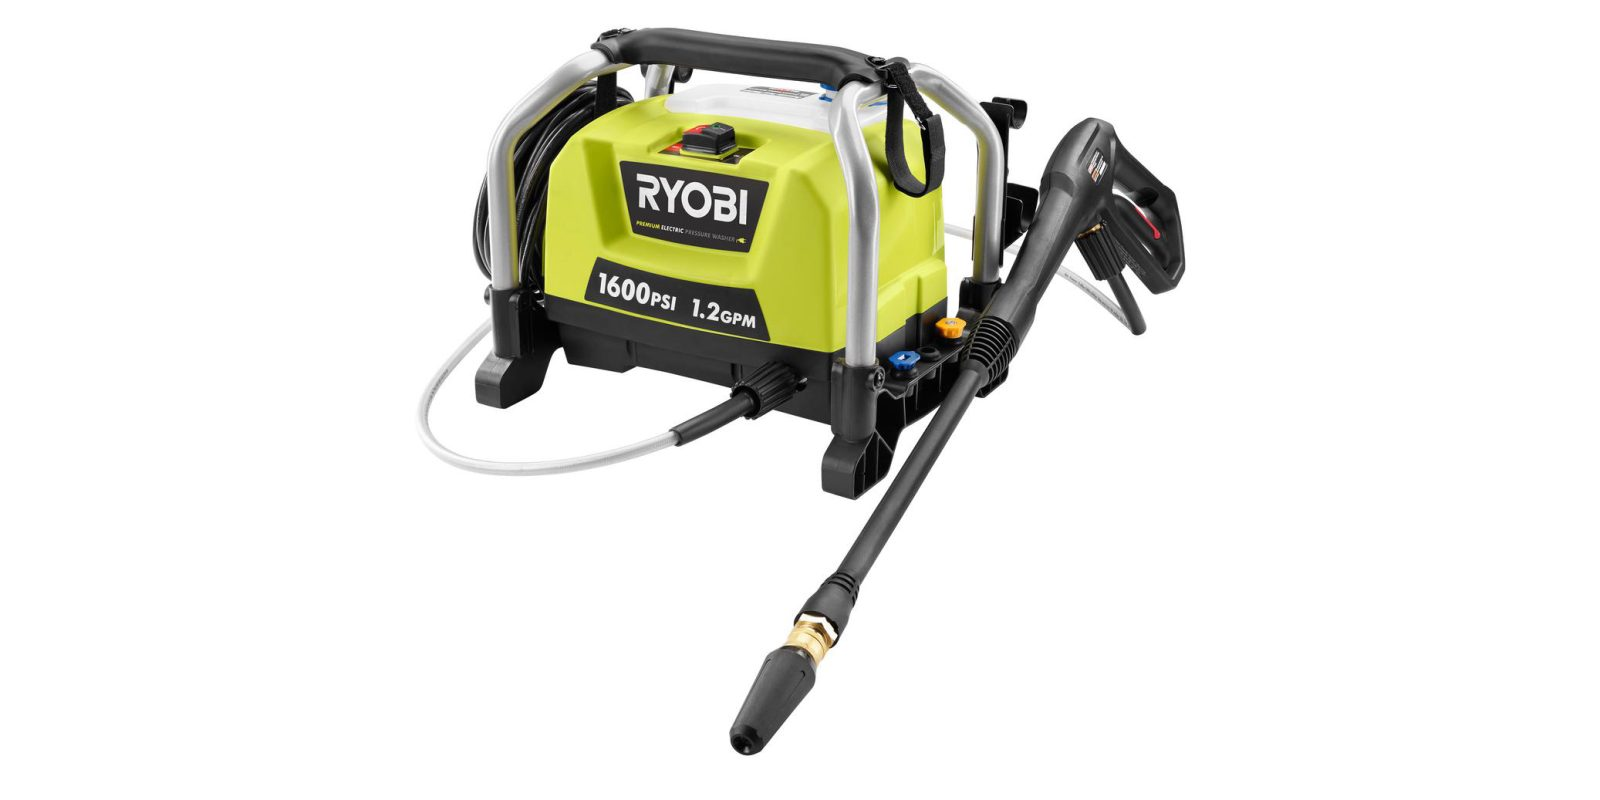 Green Deals: Ryobi 1.2GPM 1600PSI Electric Pressure Washer (cert. refurb) $70, more